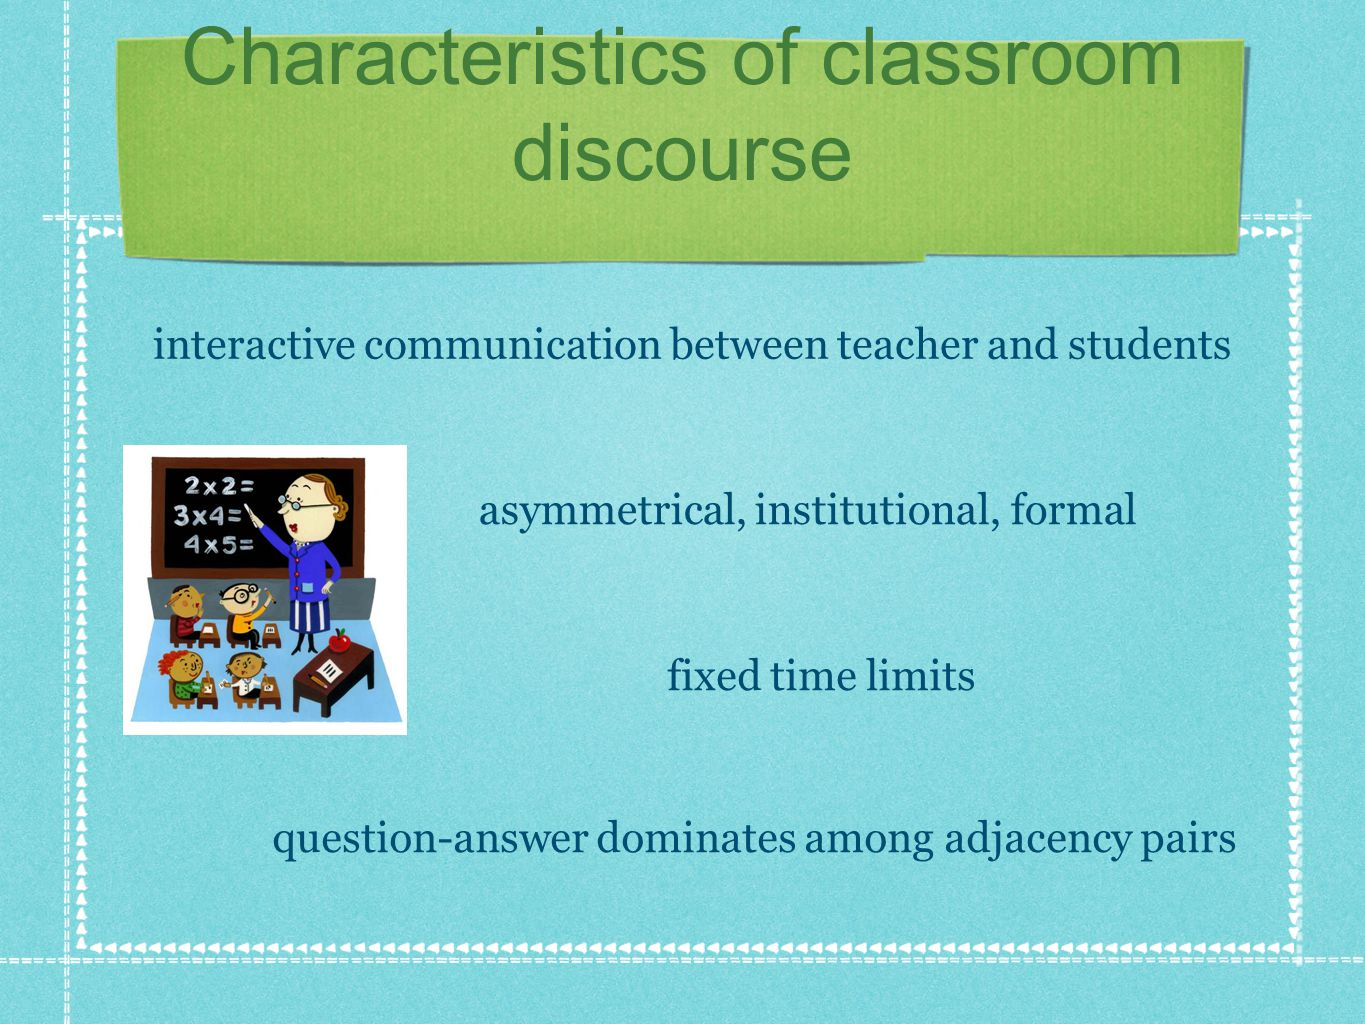 Characteristics of classroom discourse interactive communication between teacher and students asymmetrical, institutional, formal fixed time limits qu